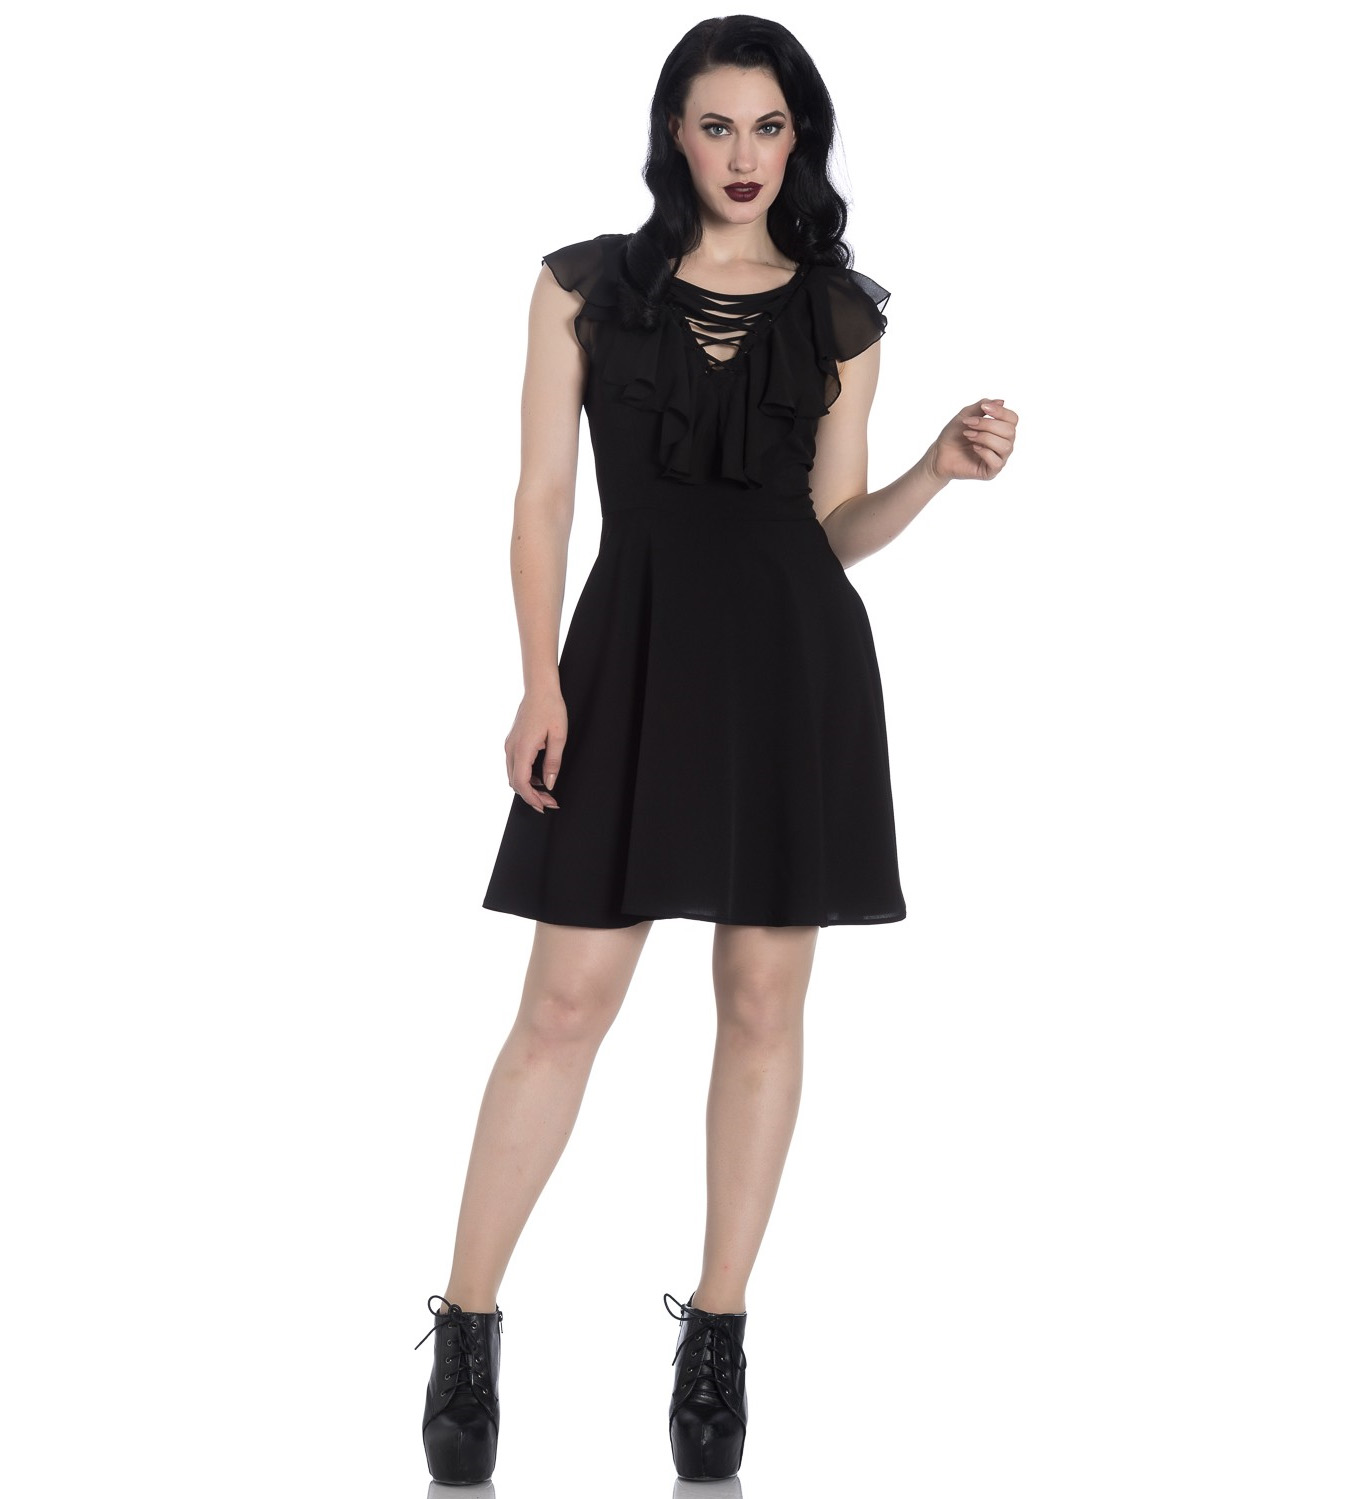 Hell-Bunny-Floaty-Lace-Up-Goth-Witch-Punk-Mini-Dress-ONYX-Black-All-Sizes thumbnail 33